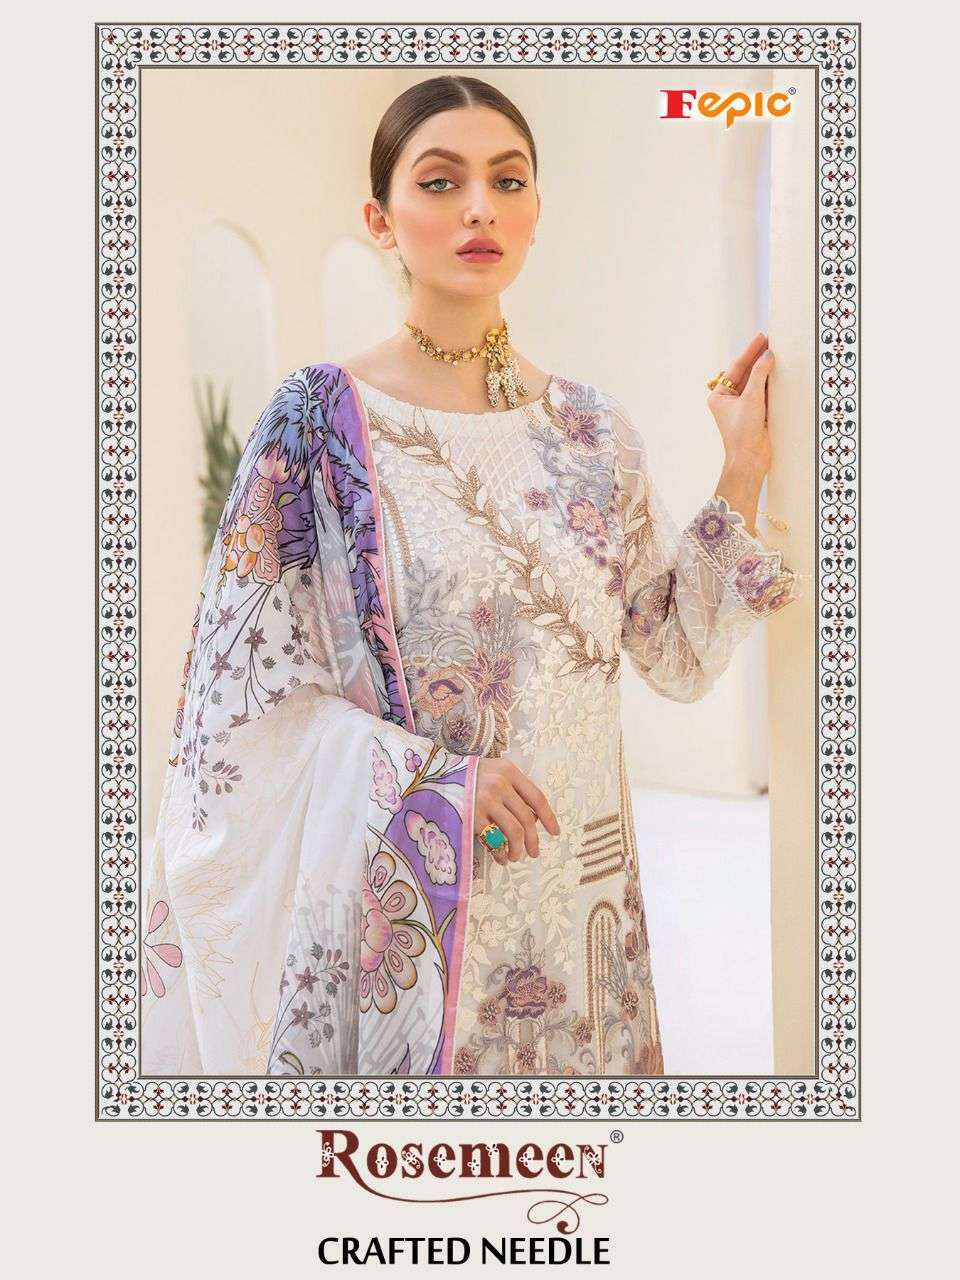 CRAFTED NEEDLE BY FEPIC GEORGETTE PAKISTANI DESIGNER SUITS